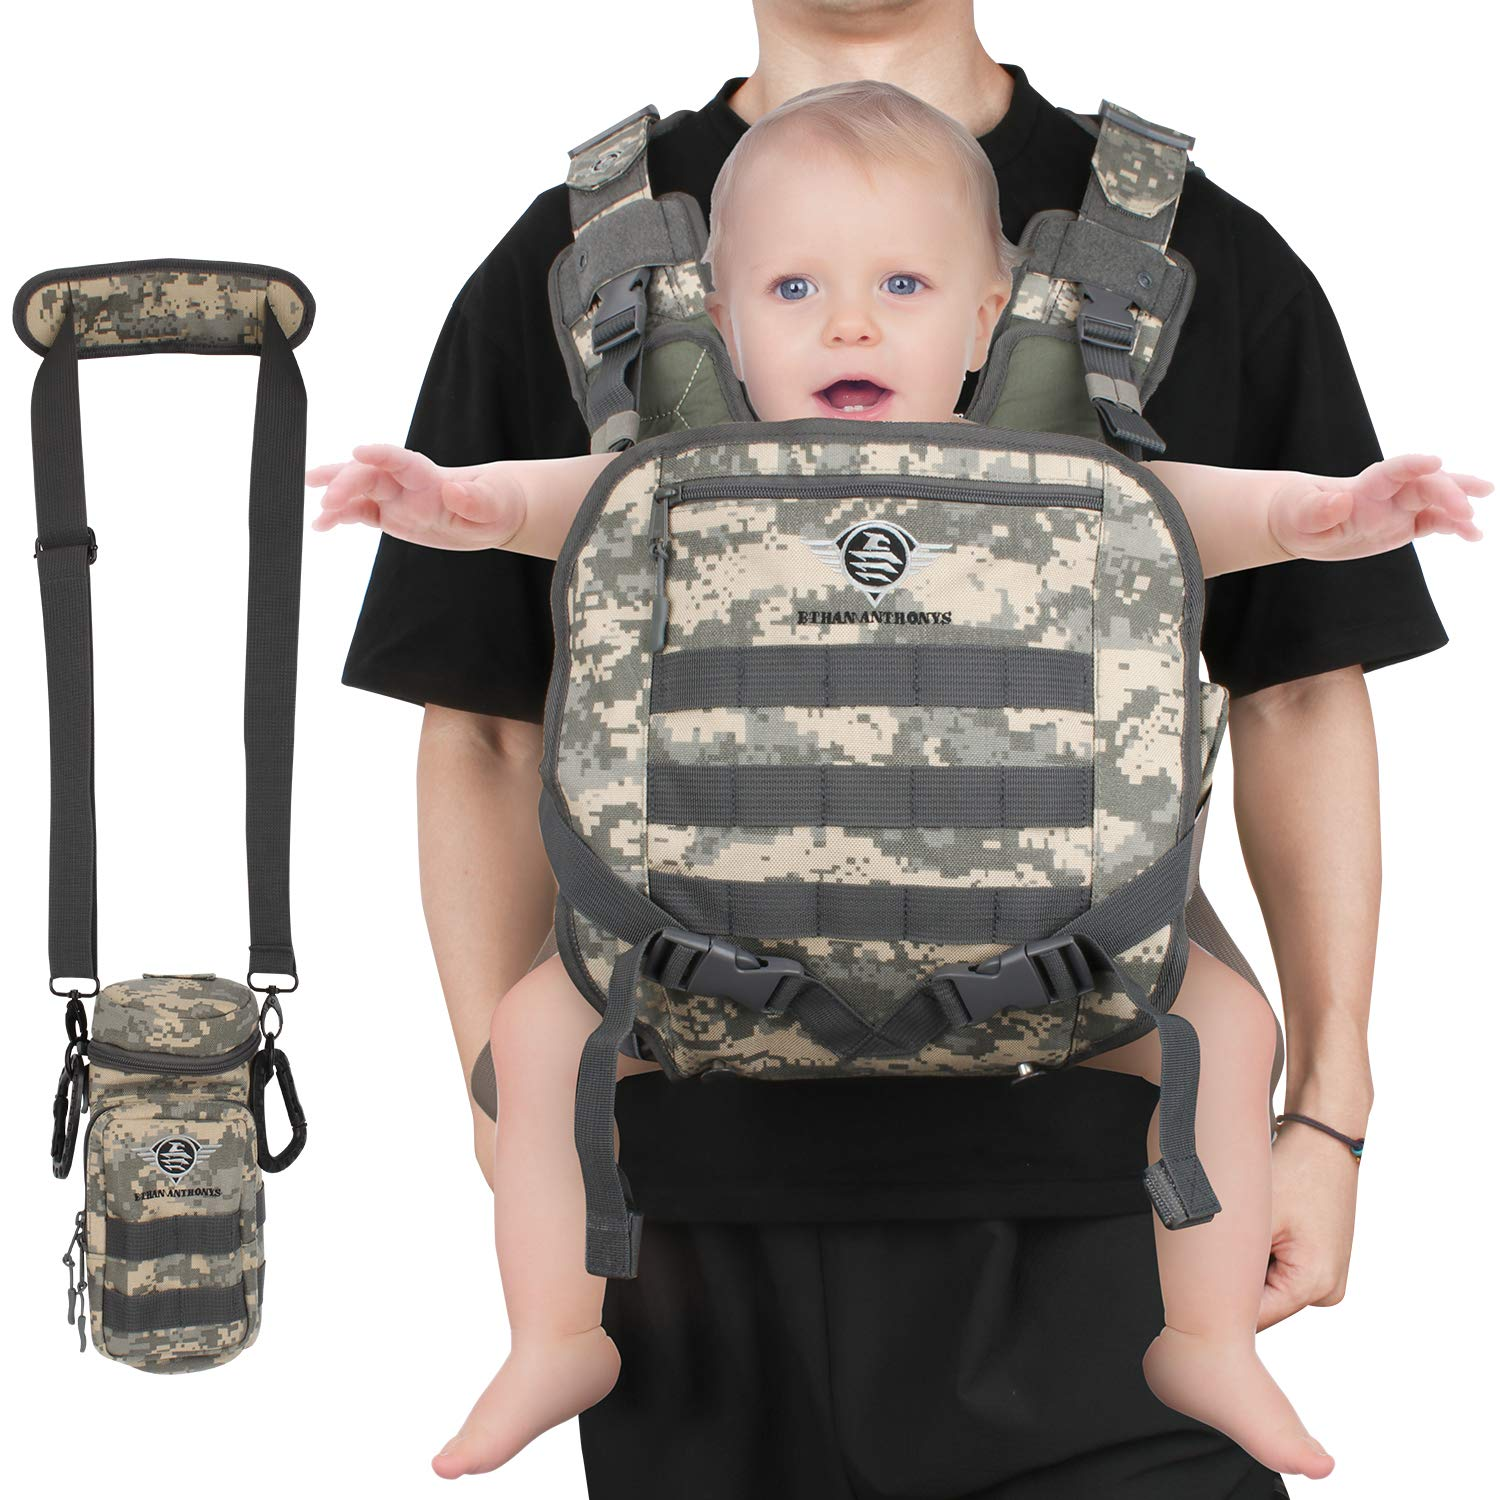 ETHAN ANTHONYS Military Inspire Baby Carrier – 8-35Lbs Baby Gear for Dads – Infant Baby Carrier with Bottle Holder – Comfortable and Sturdy Design – Multipurpose and Versatile